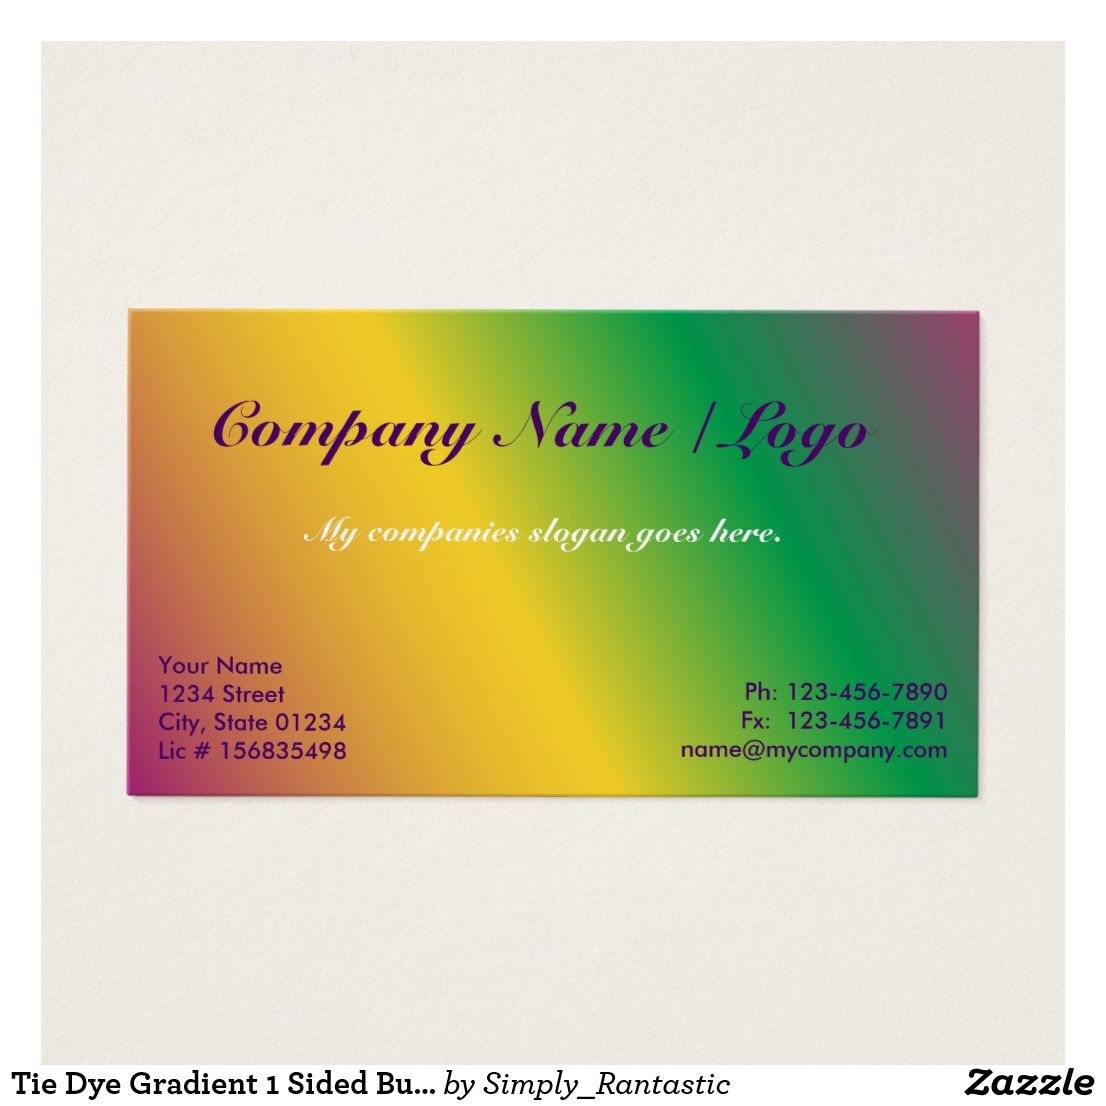 Tie Dye Gradient 1 Sided Business Card Template Business Cards